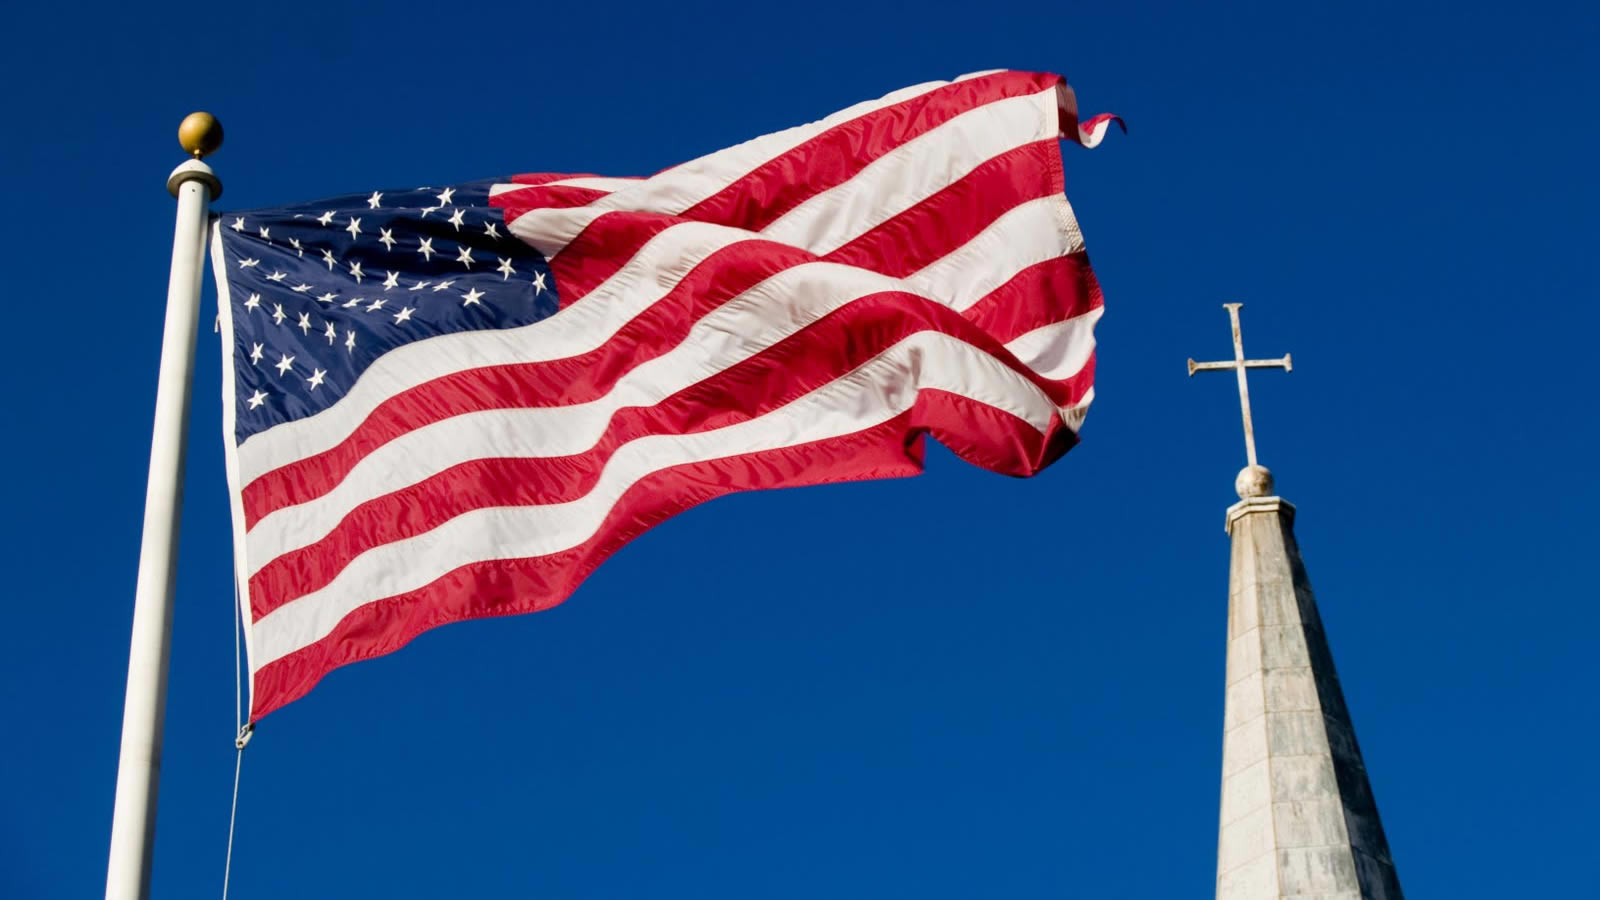 United States Flag and Church Steeple with Cross